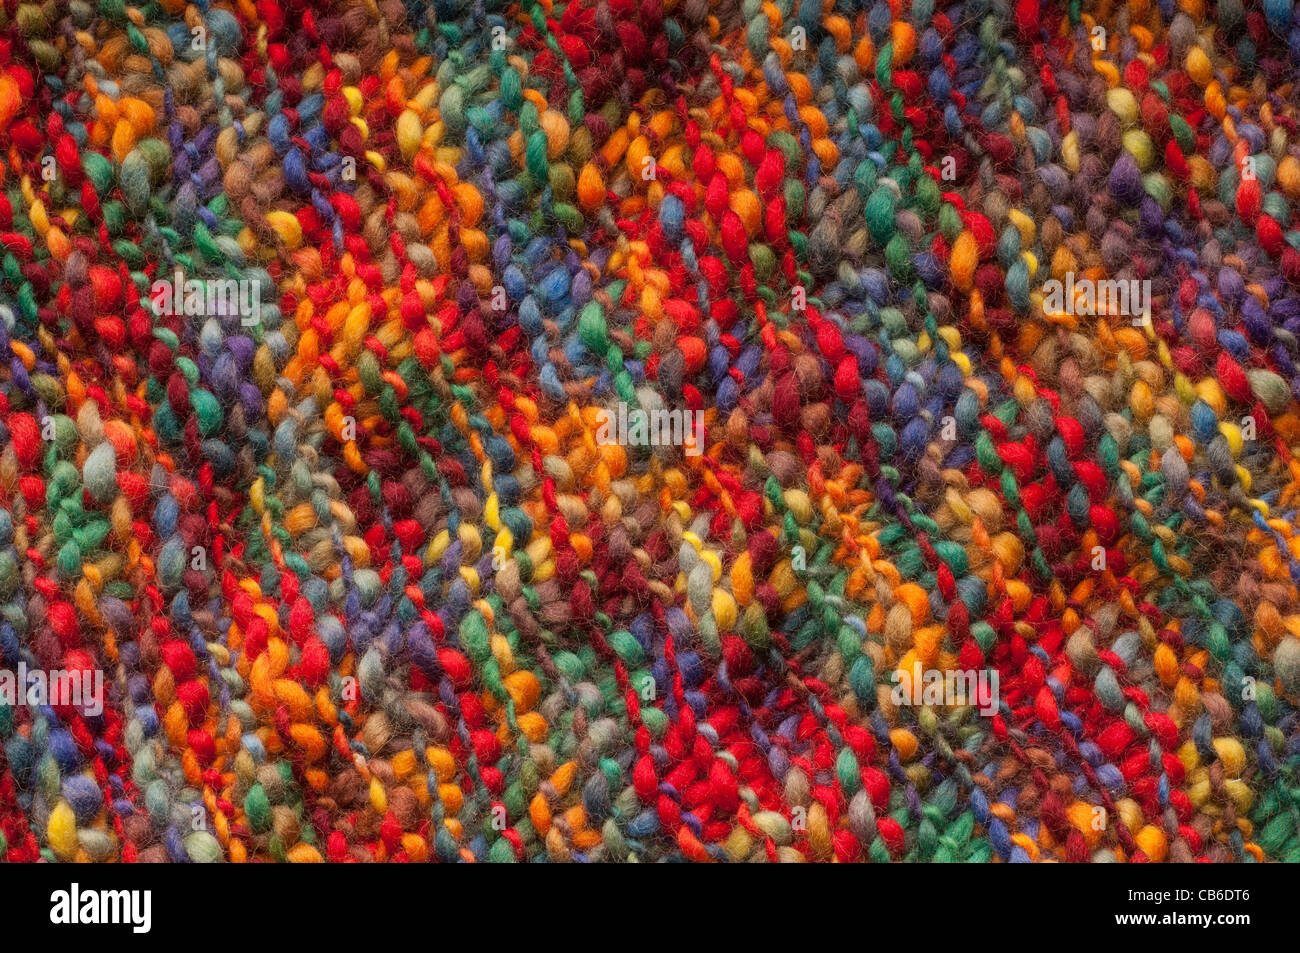 natural wool fabric with colorful hand made - Stock Image